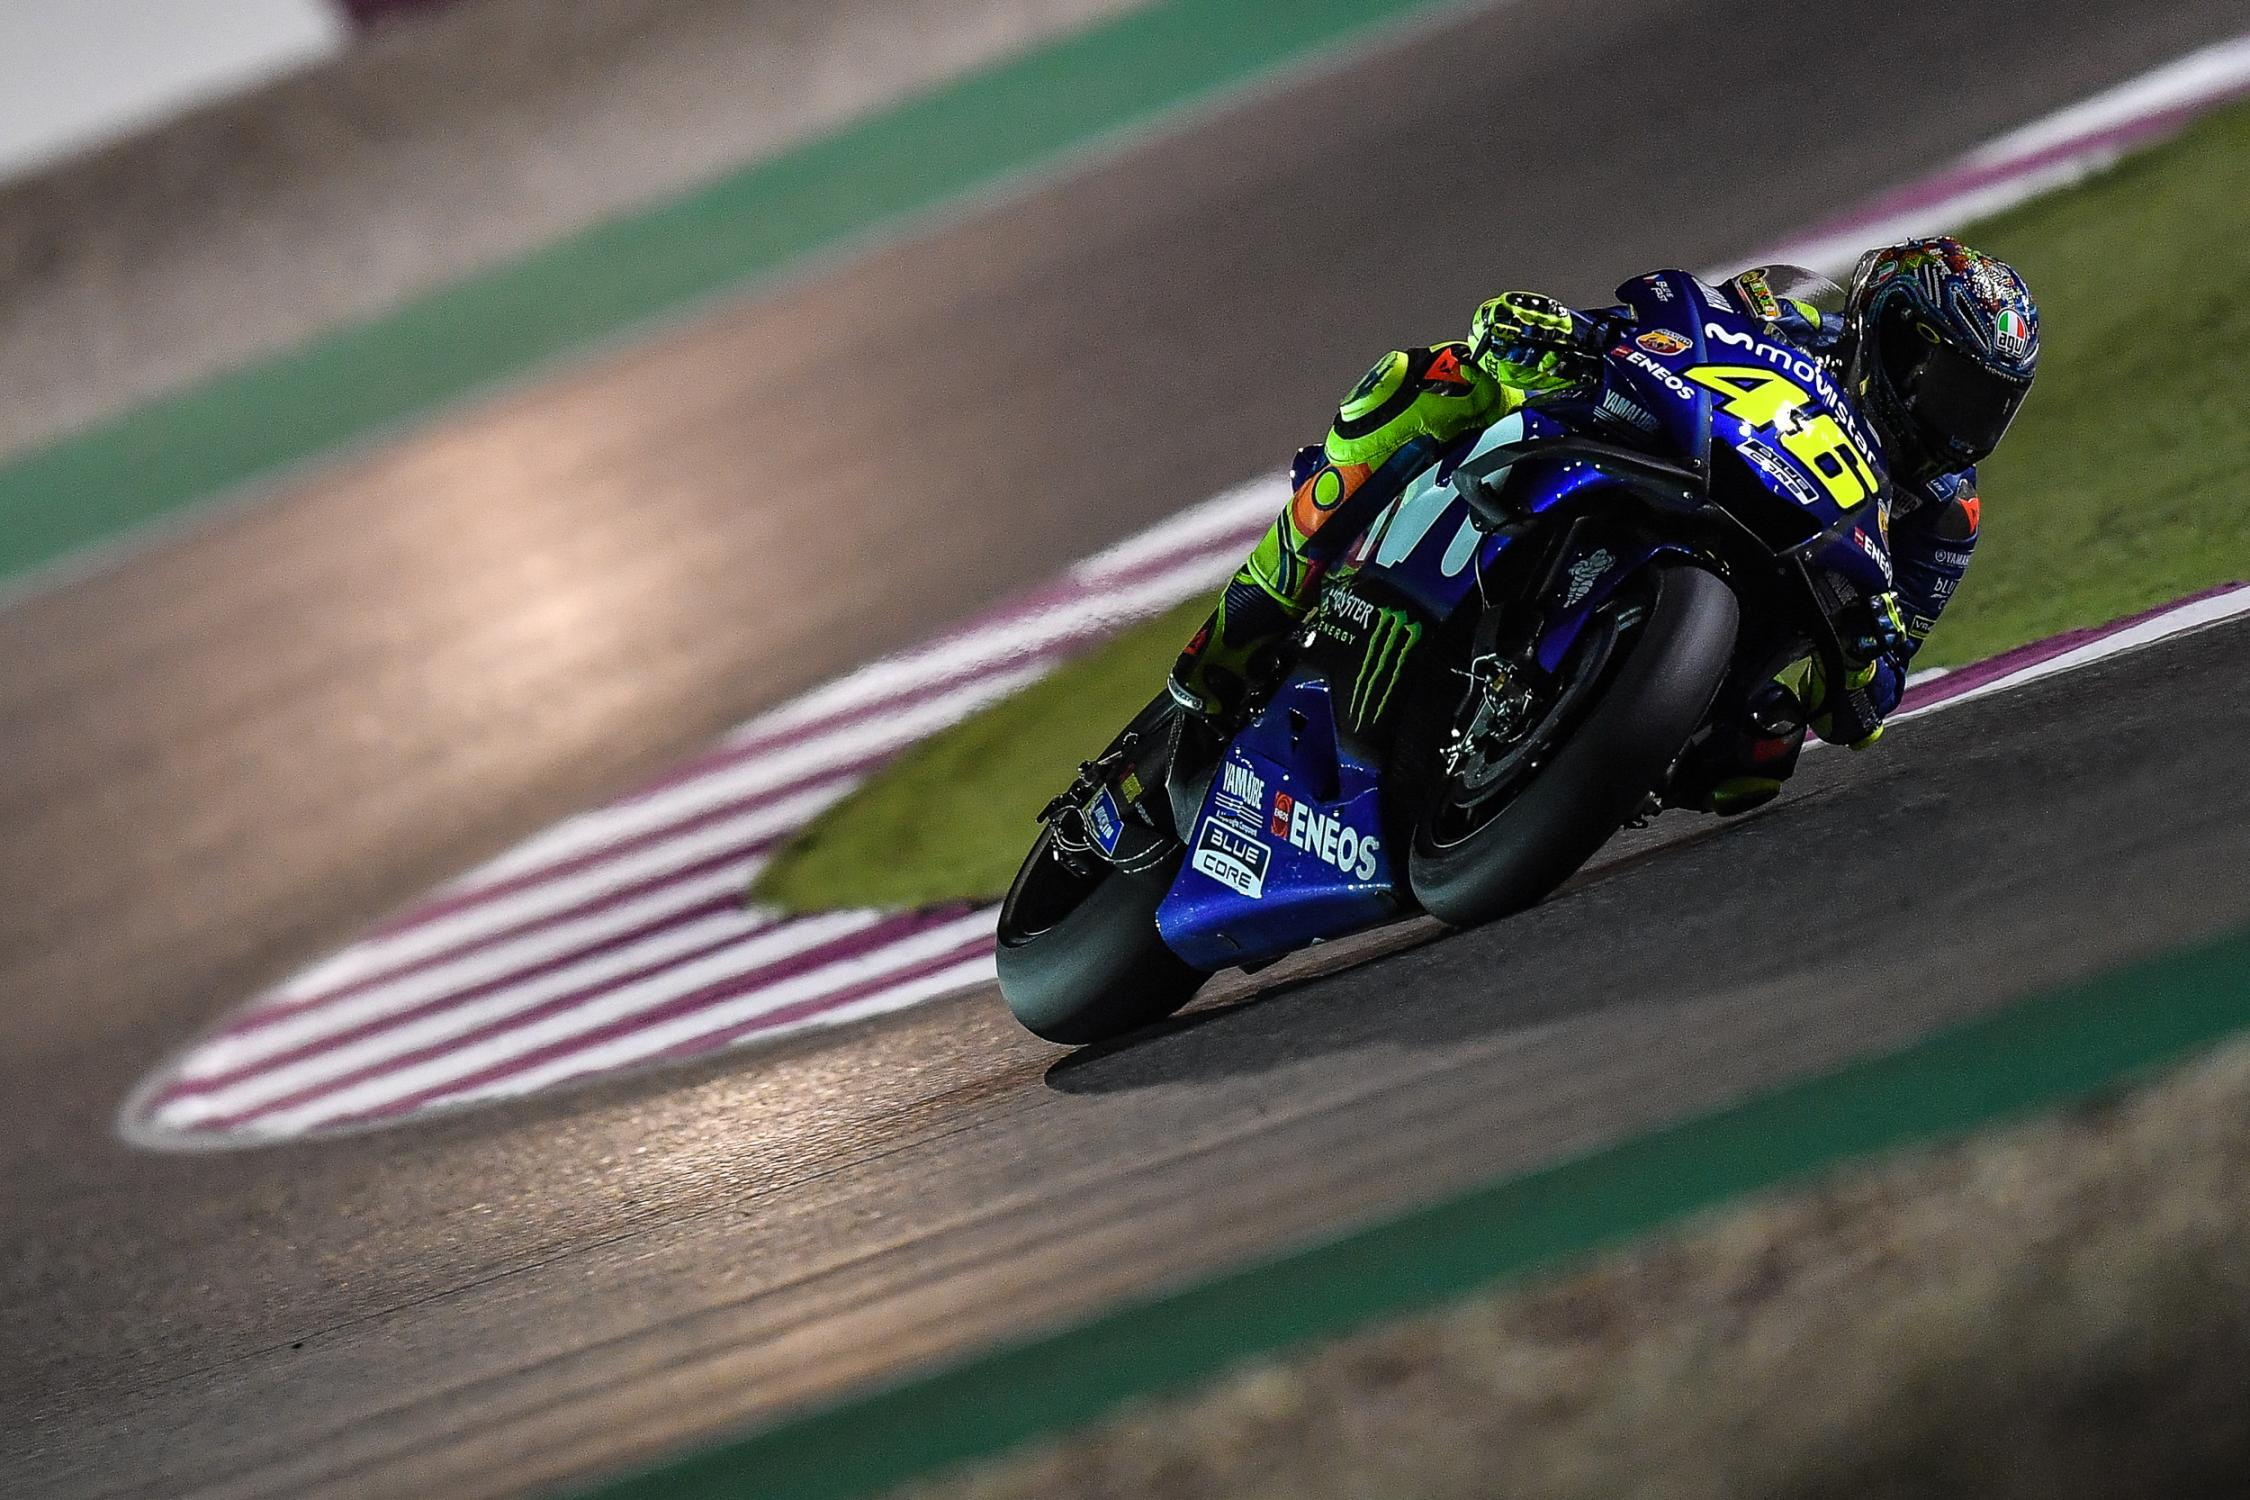 [Test] Losail 2018 46-valentino-rossi-italg5_2789.gallery_full_top_fullscreen